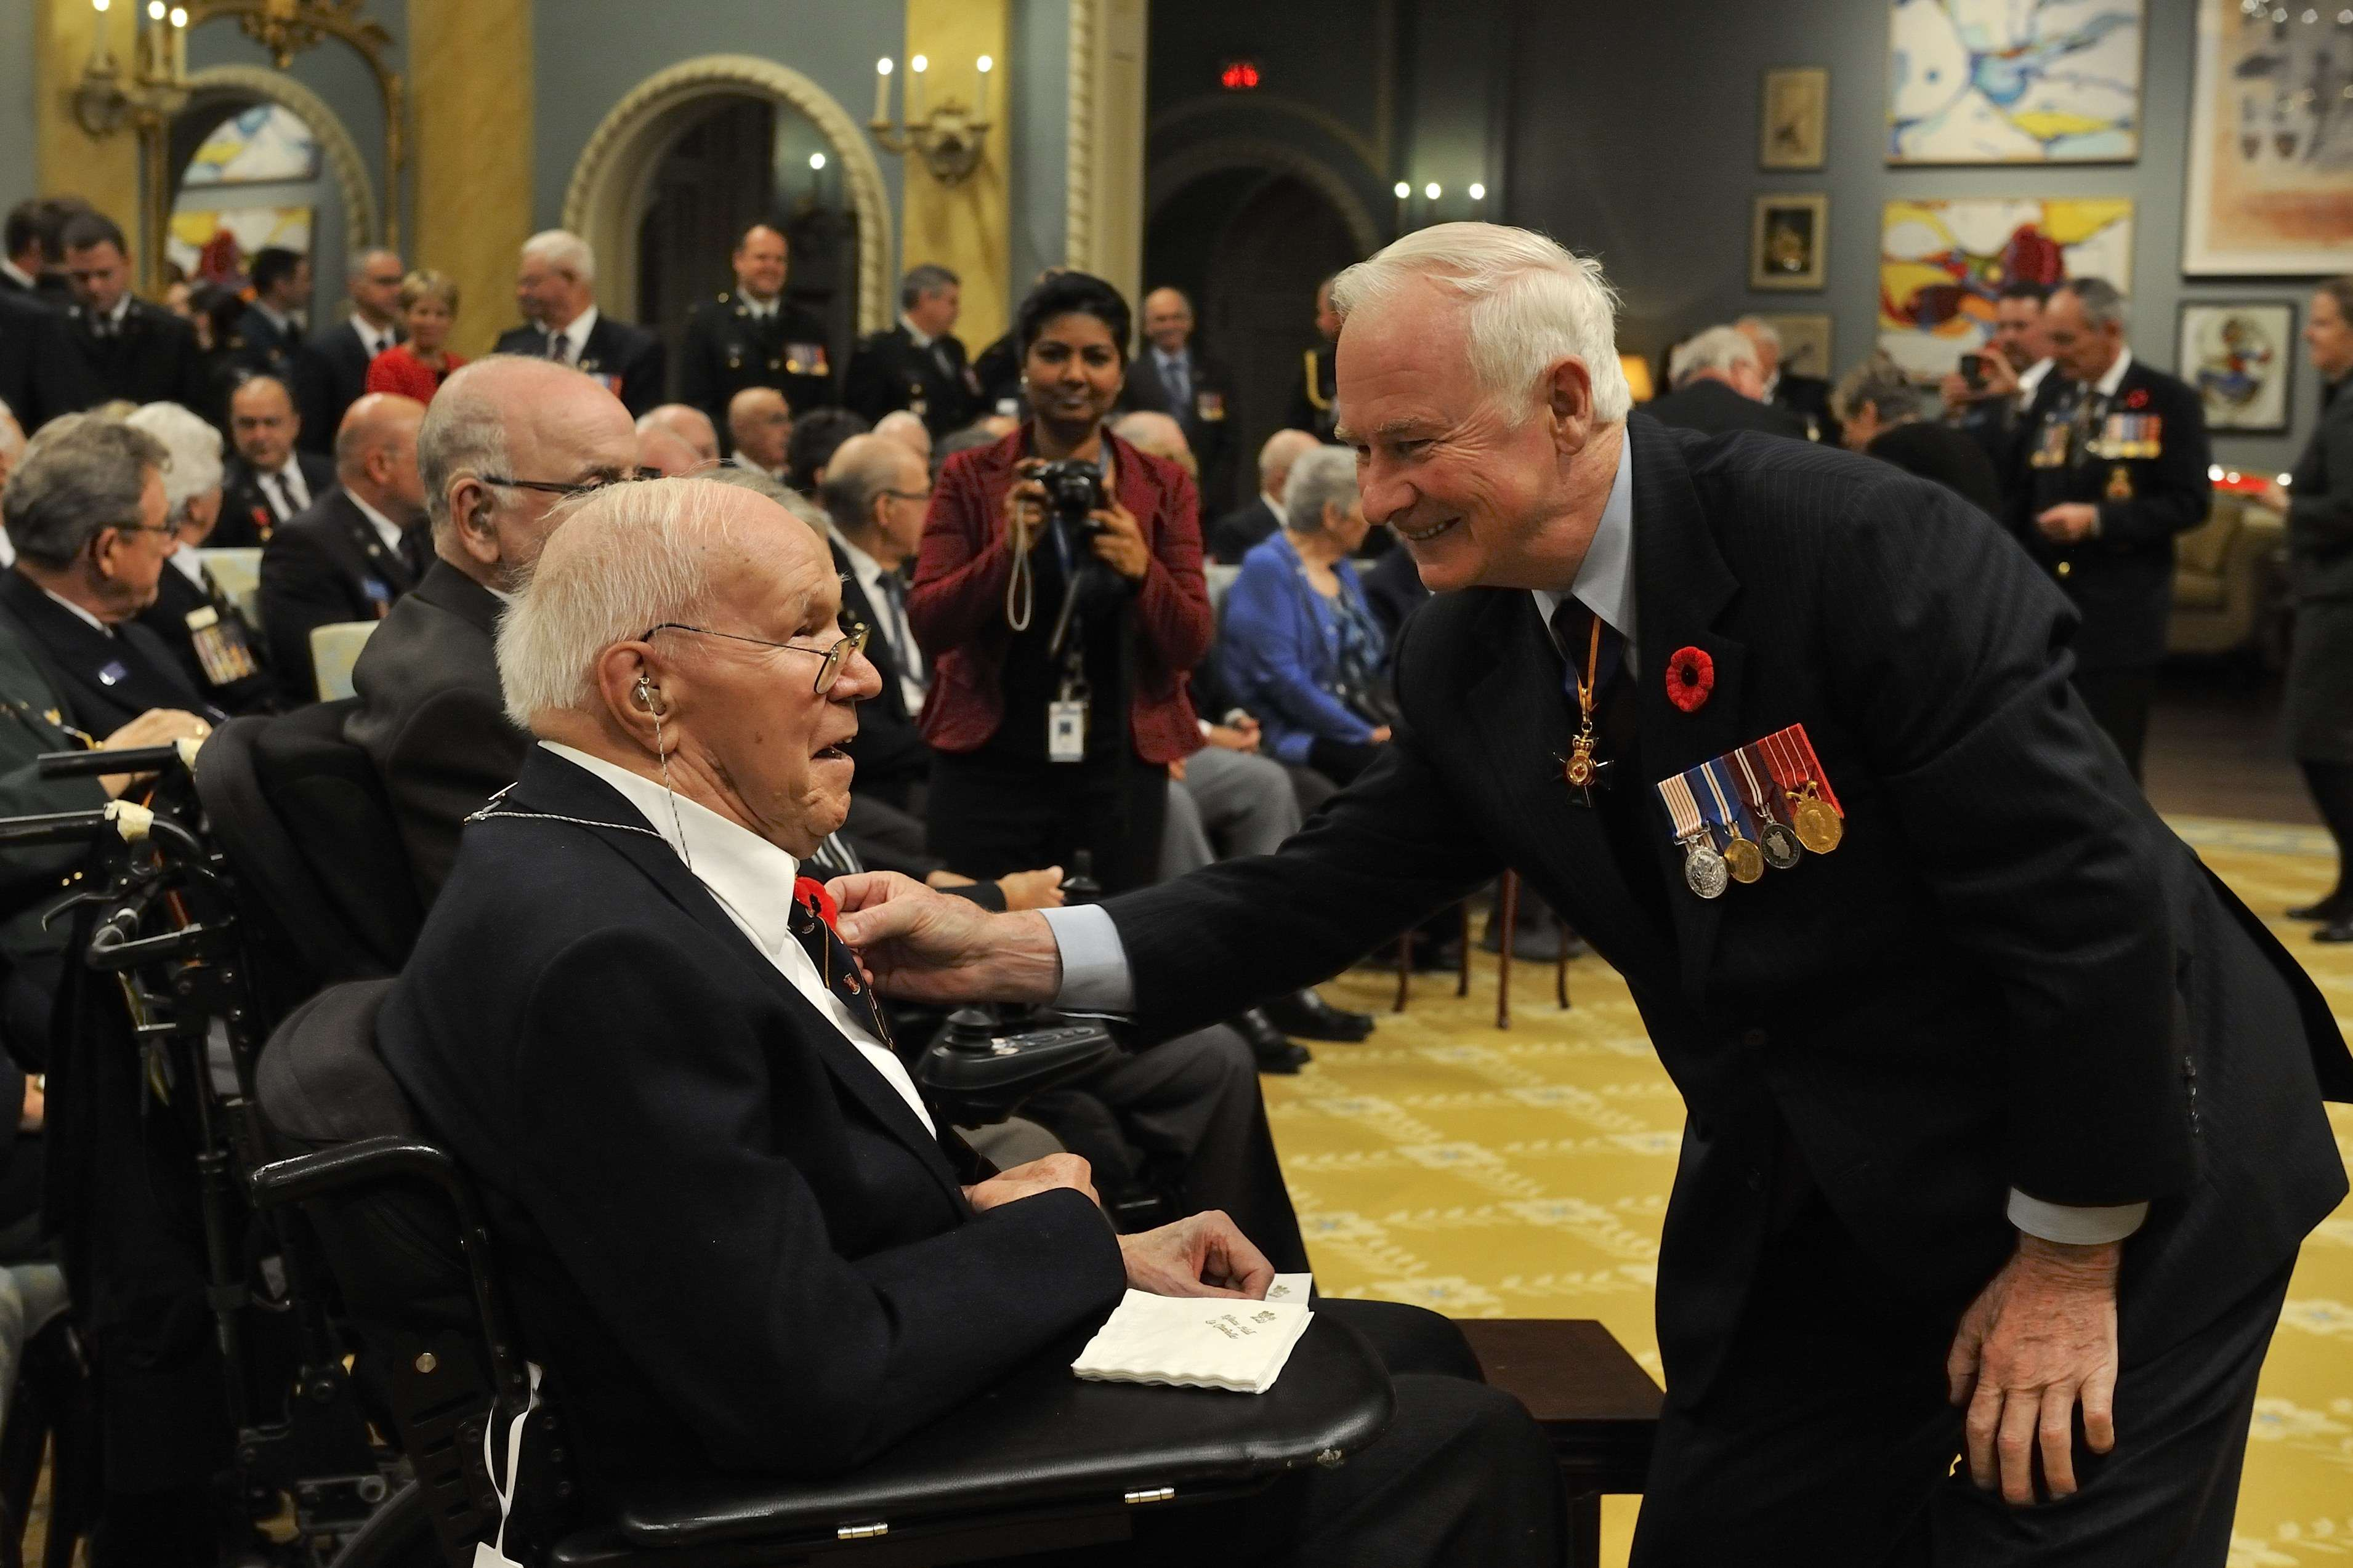 Following the ceremony, His Excellency gave poppies to guests, including Mr. Jon Mosley, a Second World War veteran.